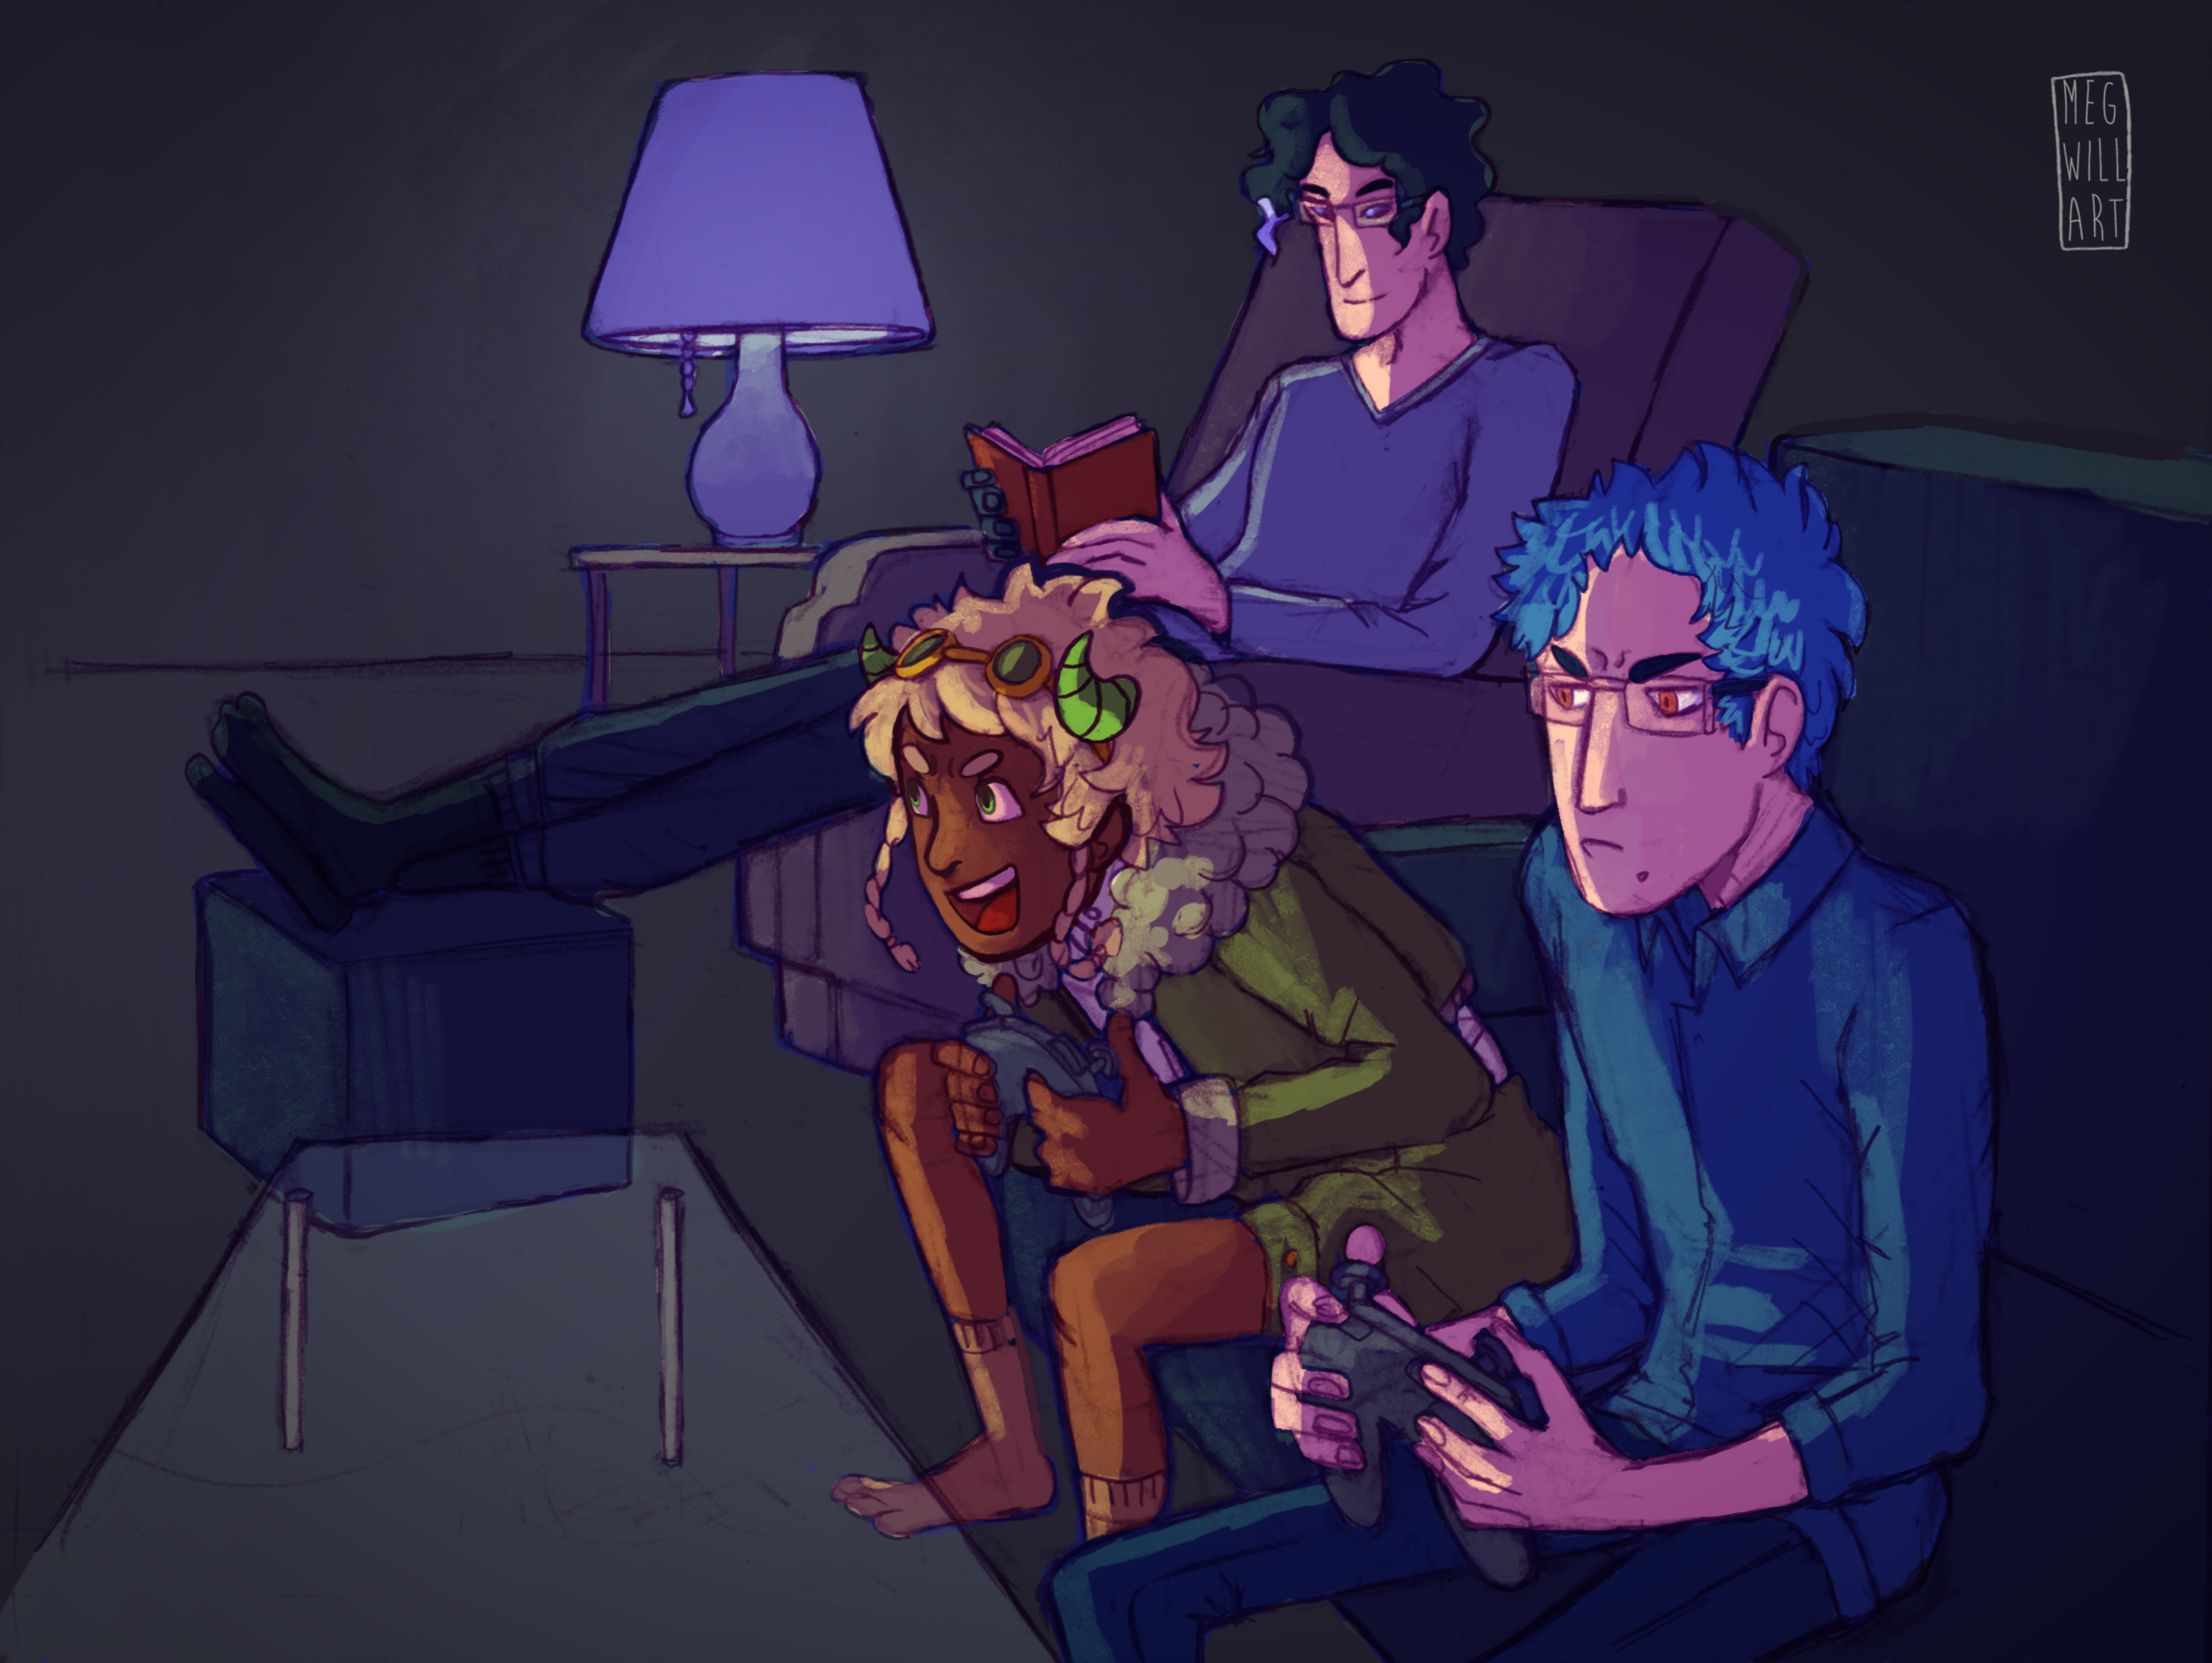 game_night_by_bearful-d9uflgh.png